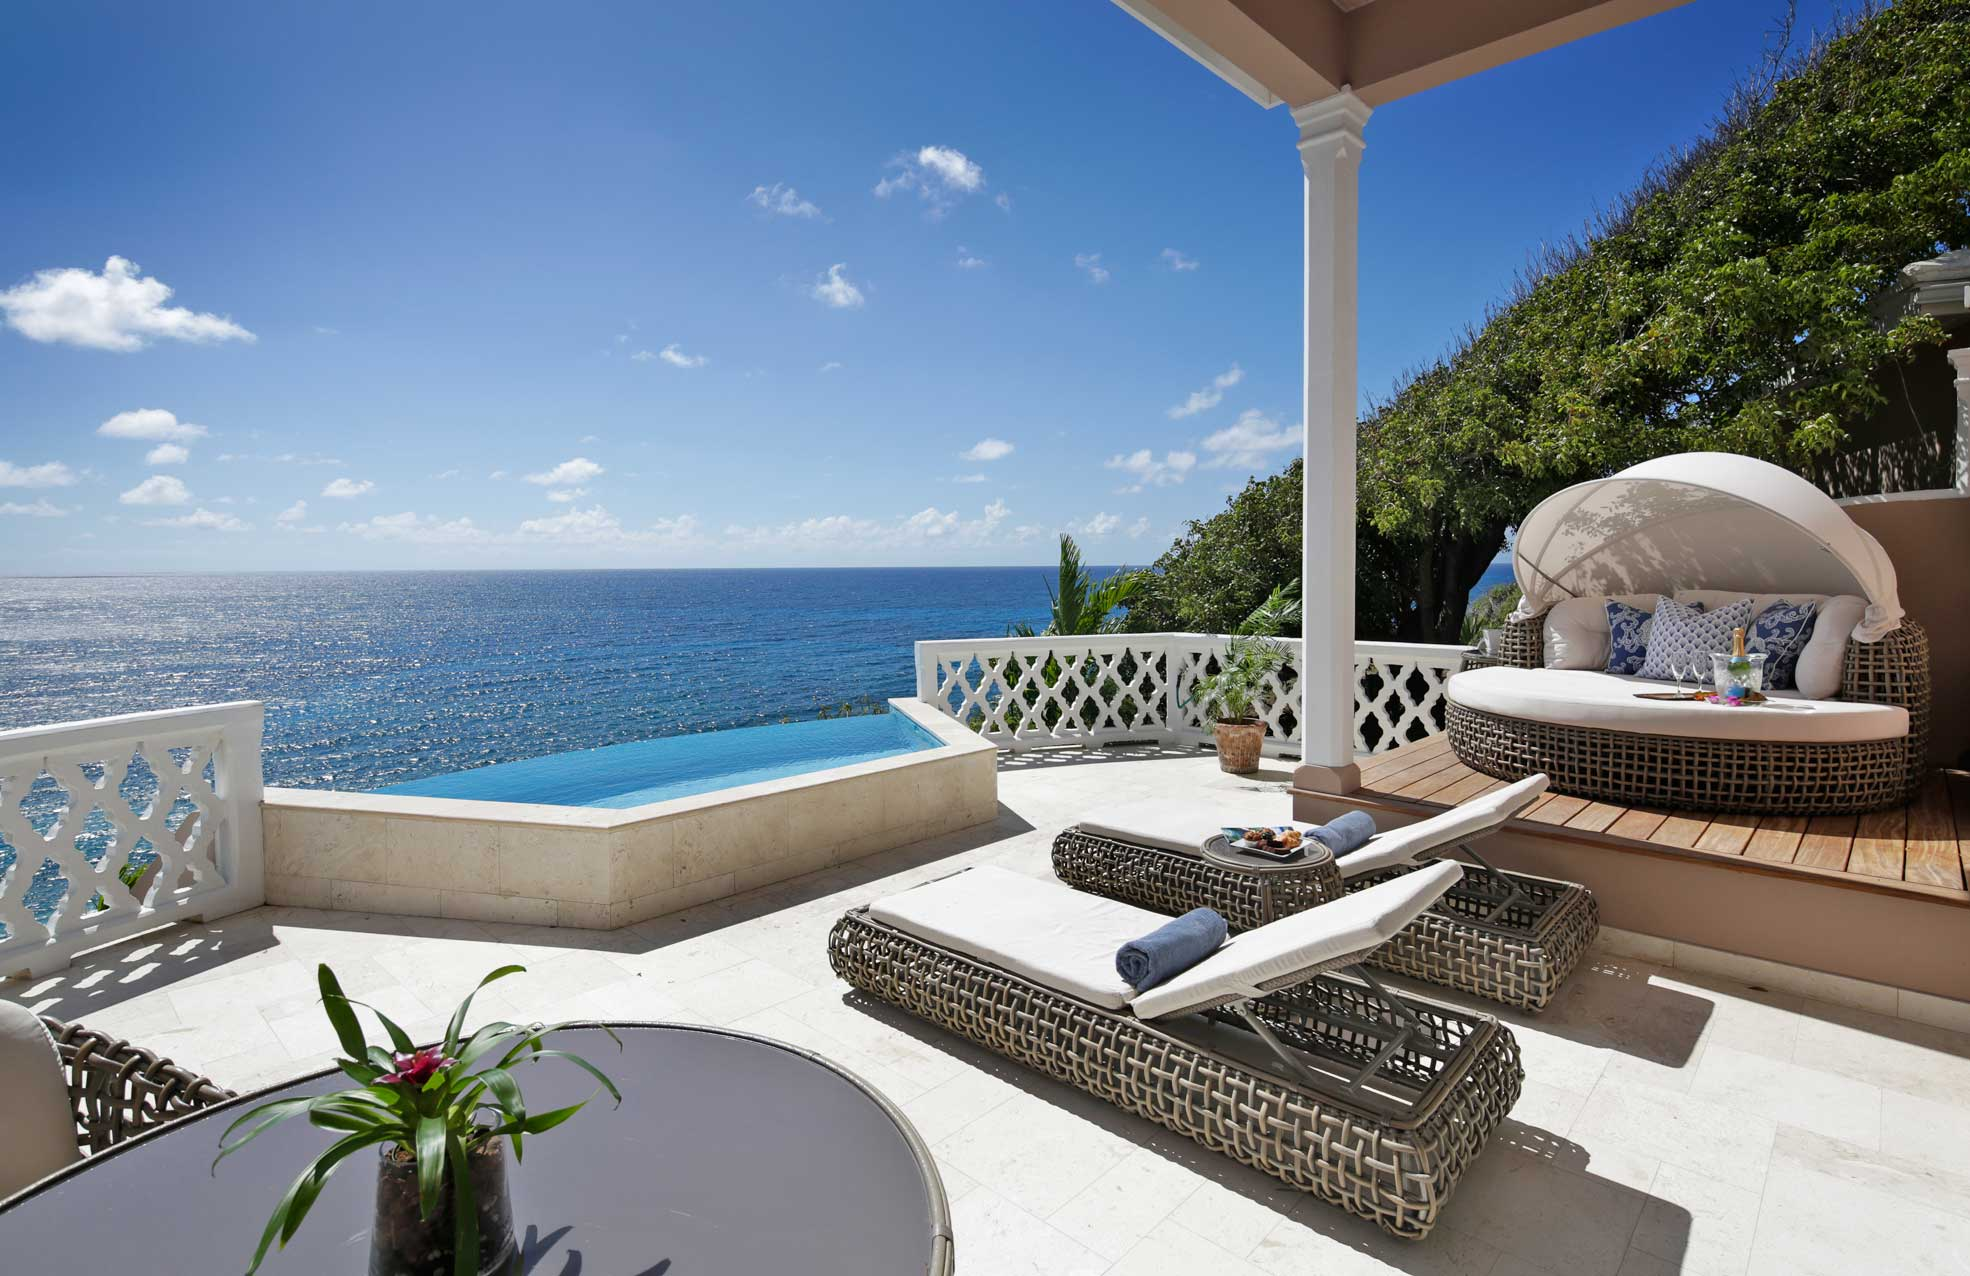 Curtain-bluff-honey-moon-suite.jpg